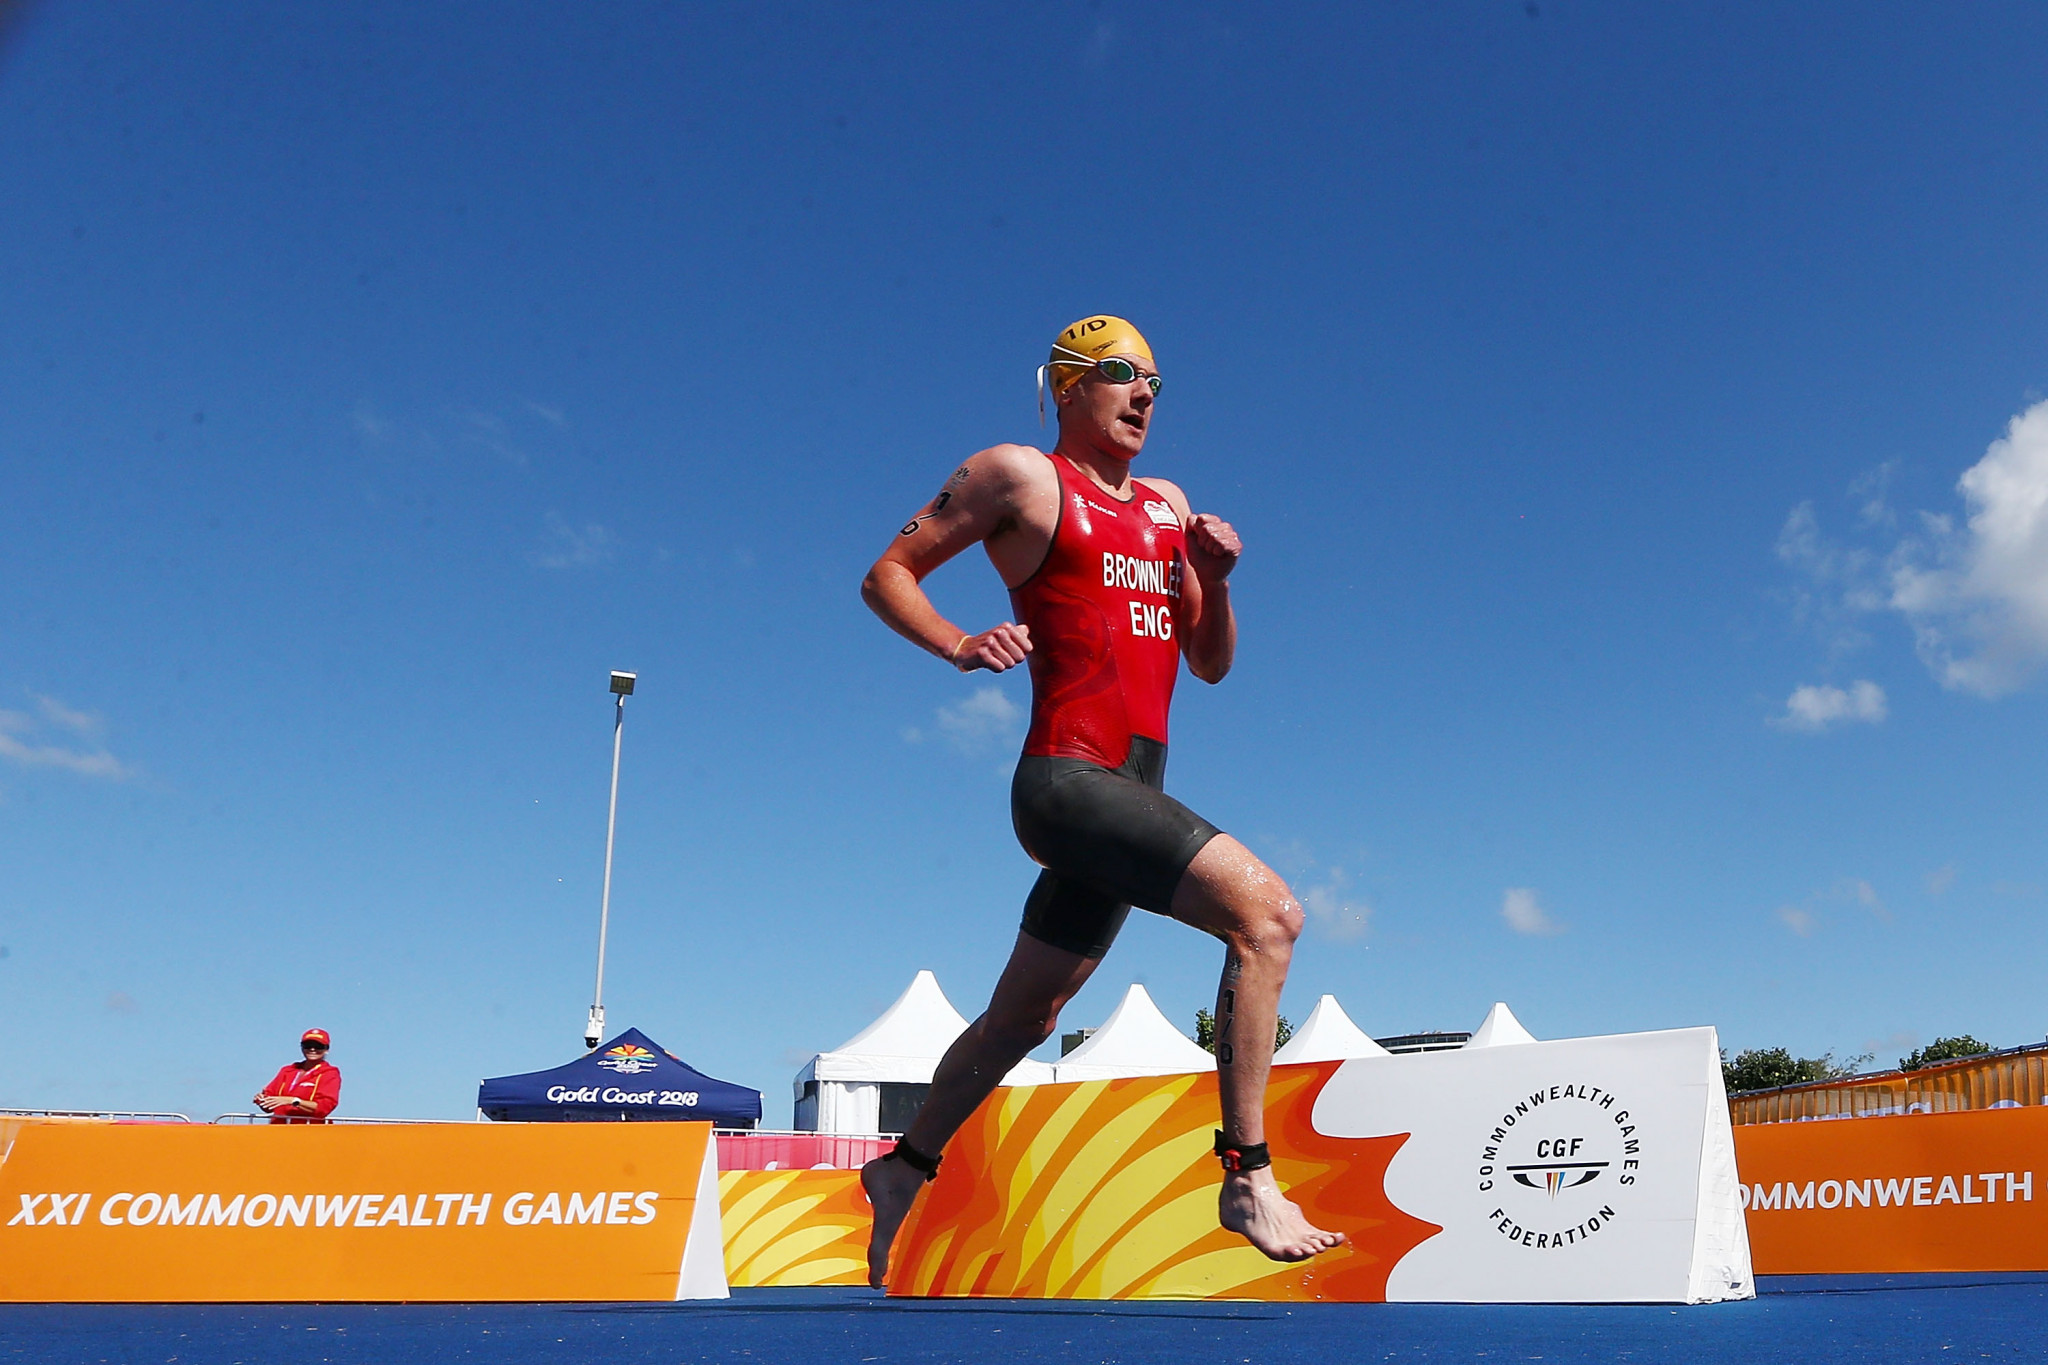 Commonwealth Games England confirm triathlon coaches for Birmingham 2022